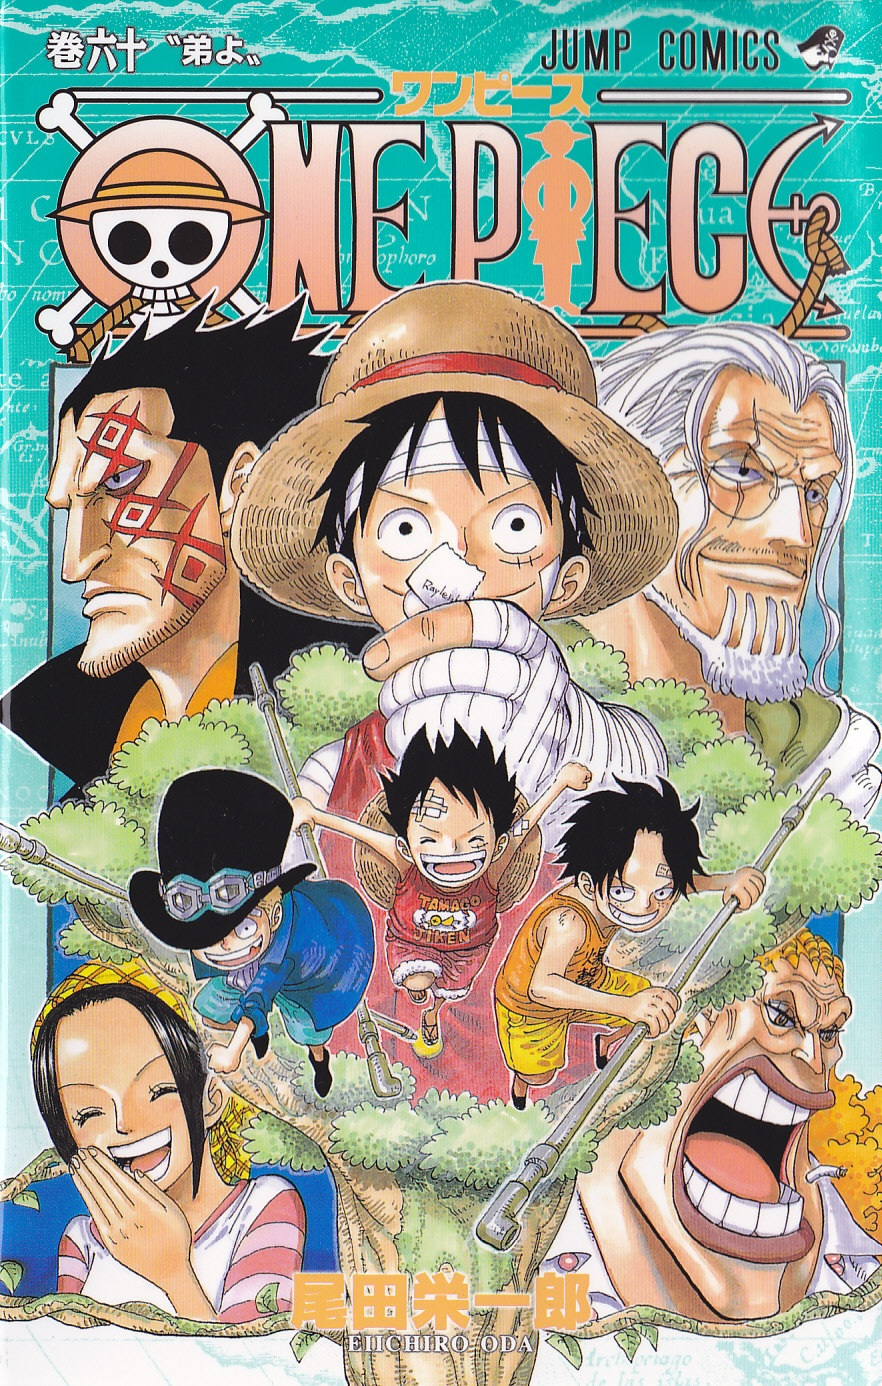 Volume Covers One Piece Comic One Piece Manga One Piece Chapter